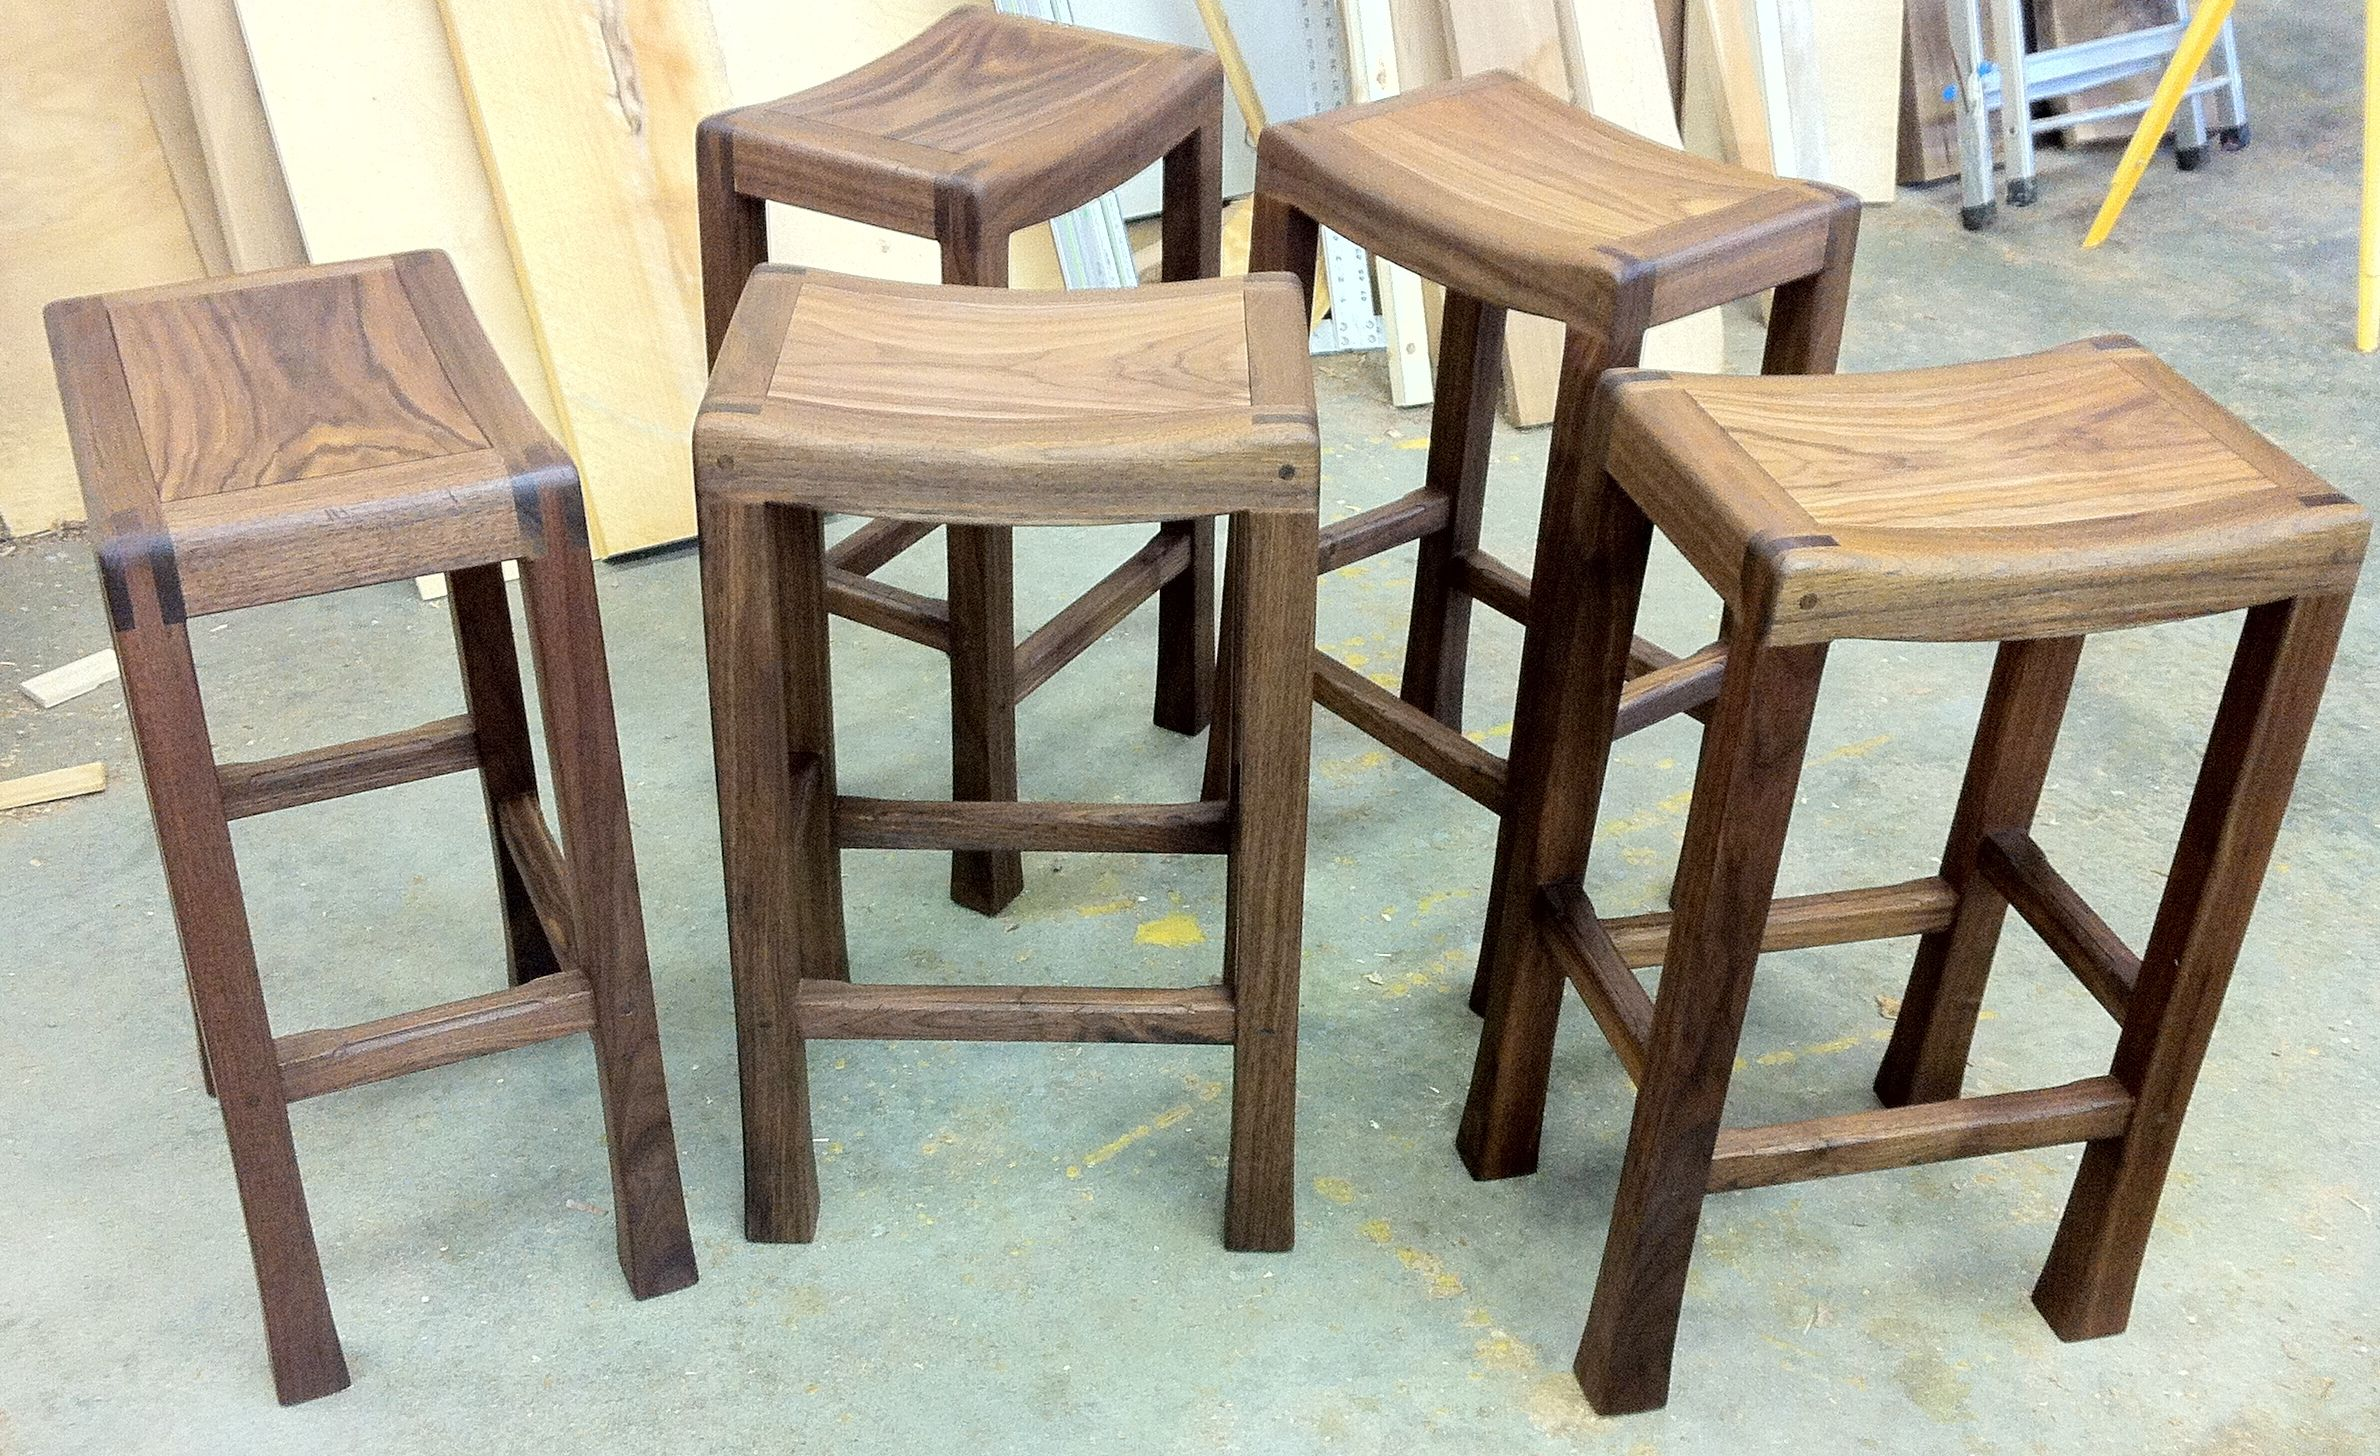 Marvelous Counter Height Bar Stool For Kitchen Furniture Idea New Kitchen Counter Bar Stools Decorating Inspiration